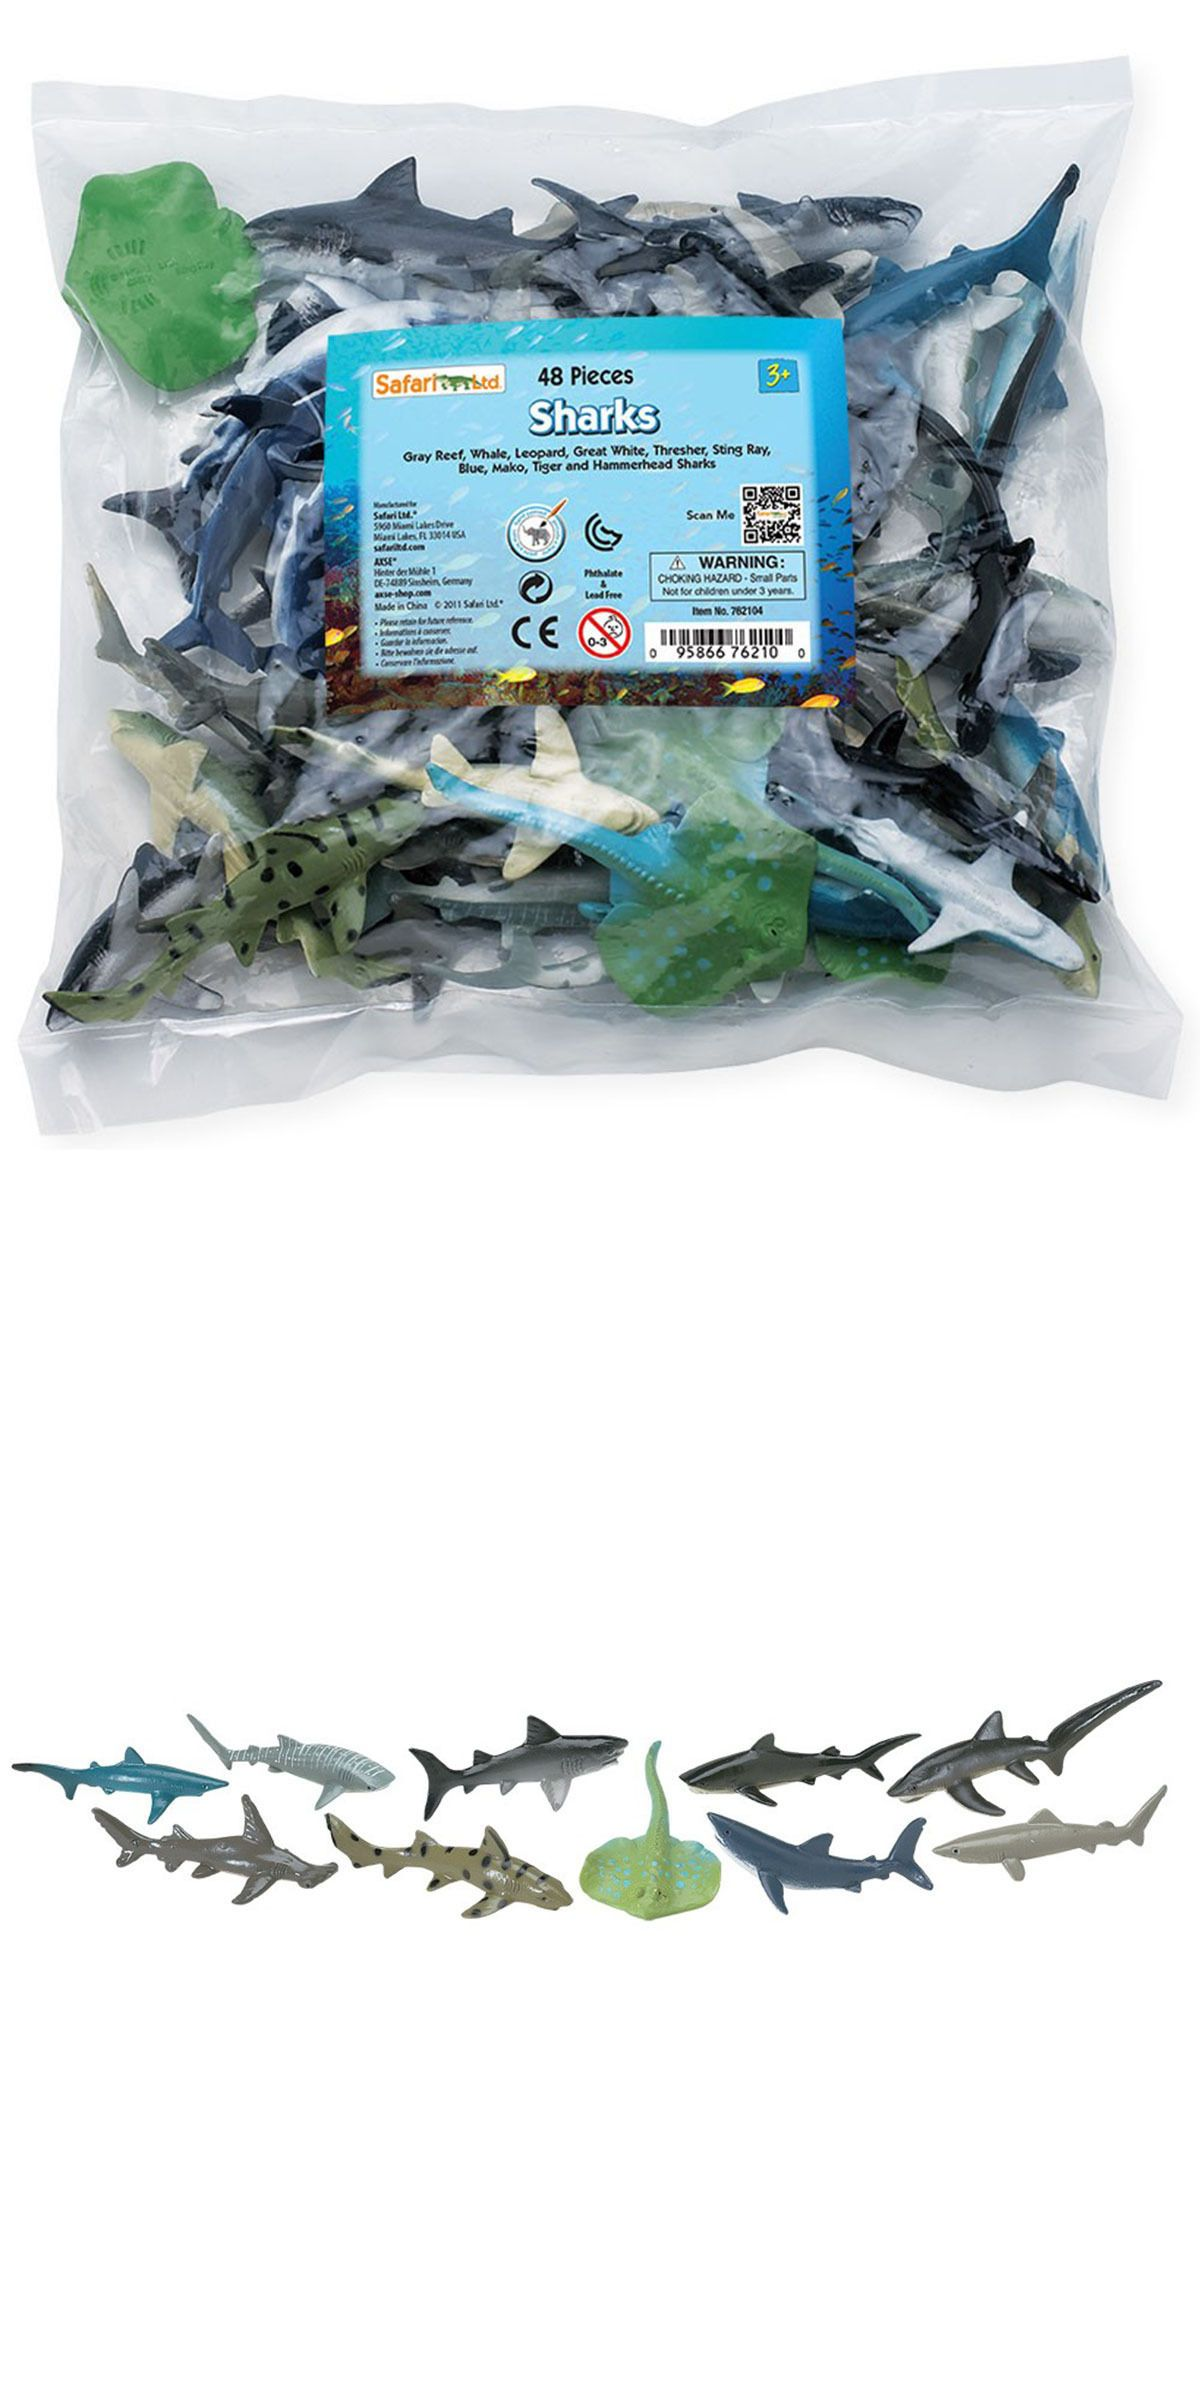 Animals And Nature 31744 Sharks Bulk Bag Mini Figures Safari Ltd Snap Circuits Jr Sc 100 Electronics Discovery Kit New Factory Sealed Toys Educational Figurines Kids Buy It Now Only 3419 On Ebay